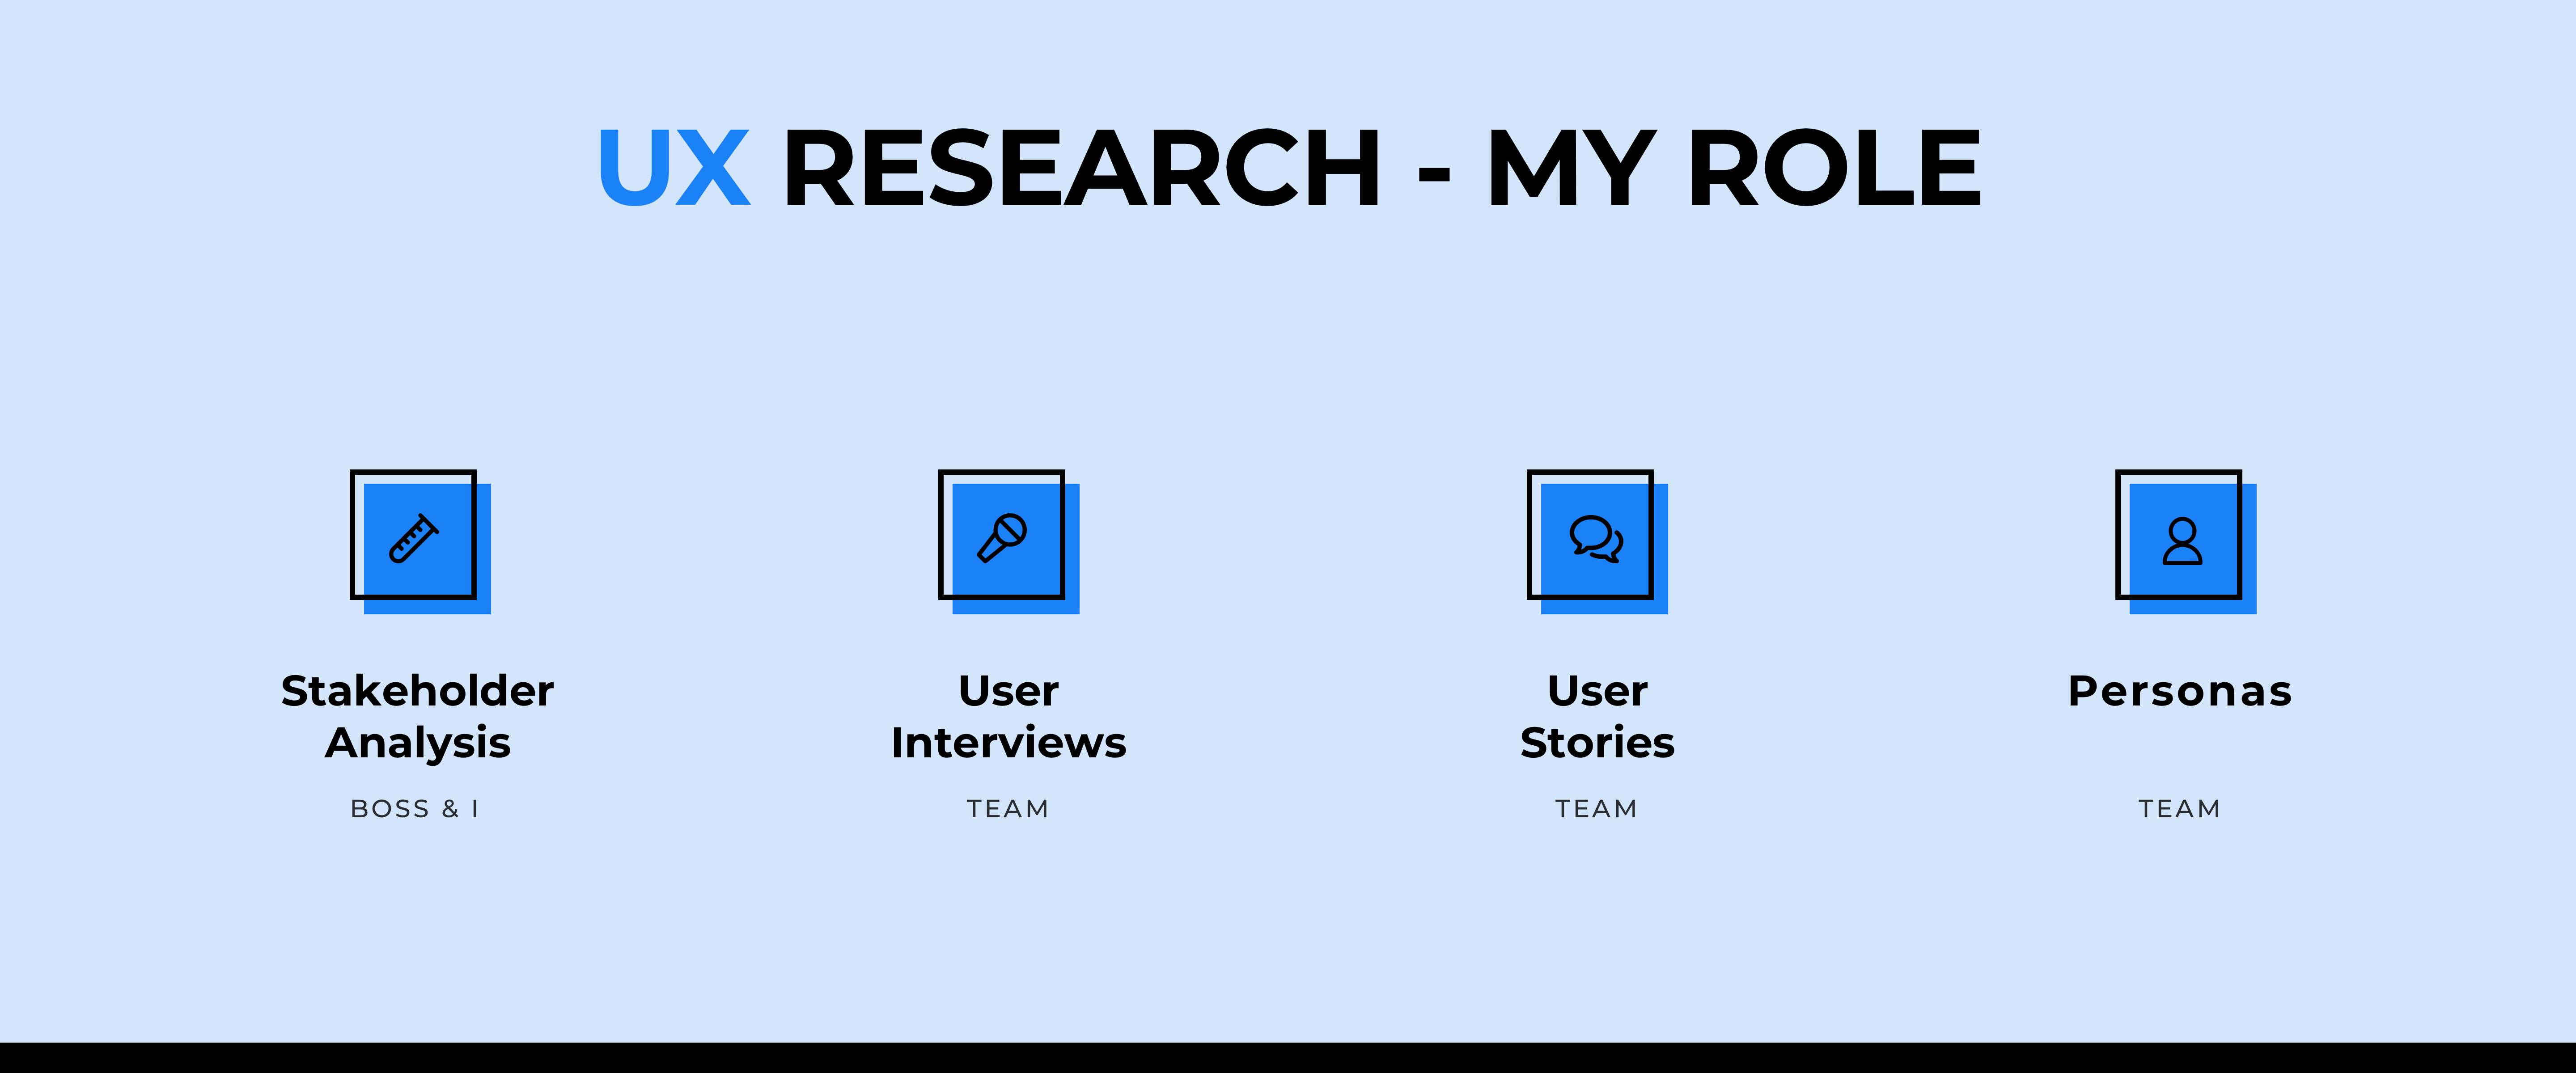 UX research Activities: stakeholder analysis, user interviews, user stories, personas